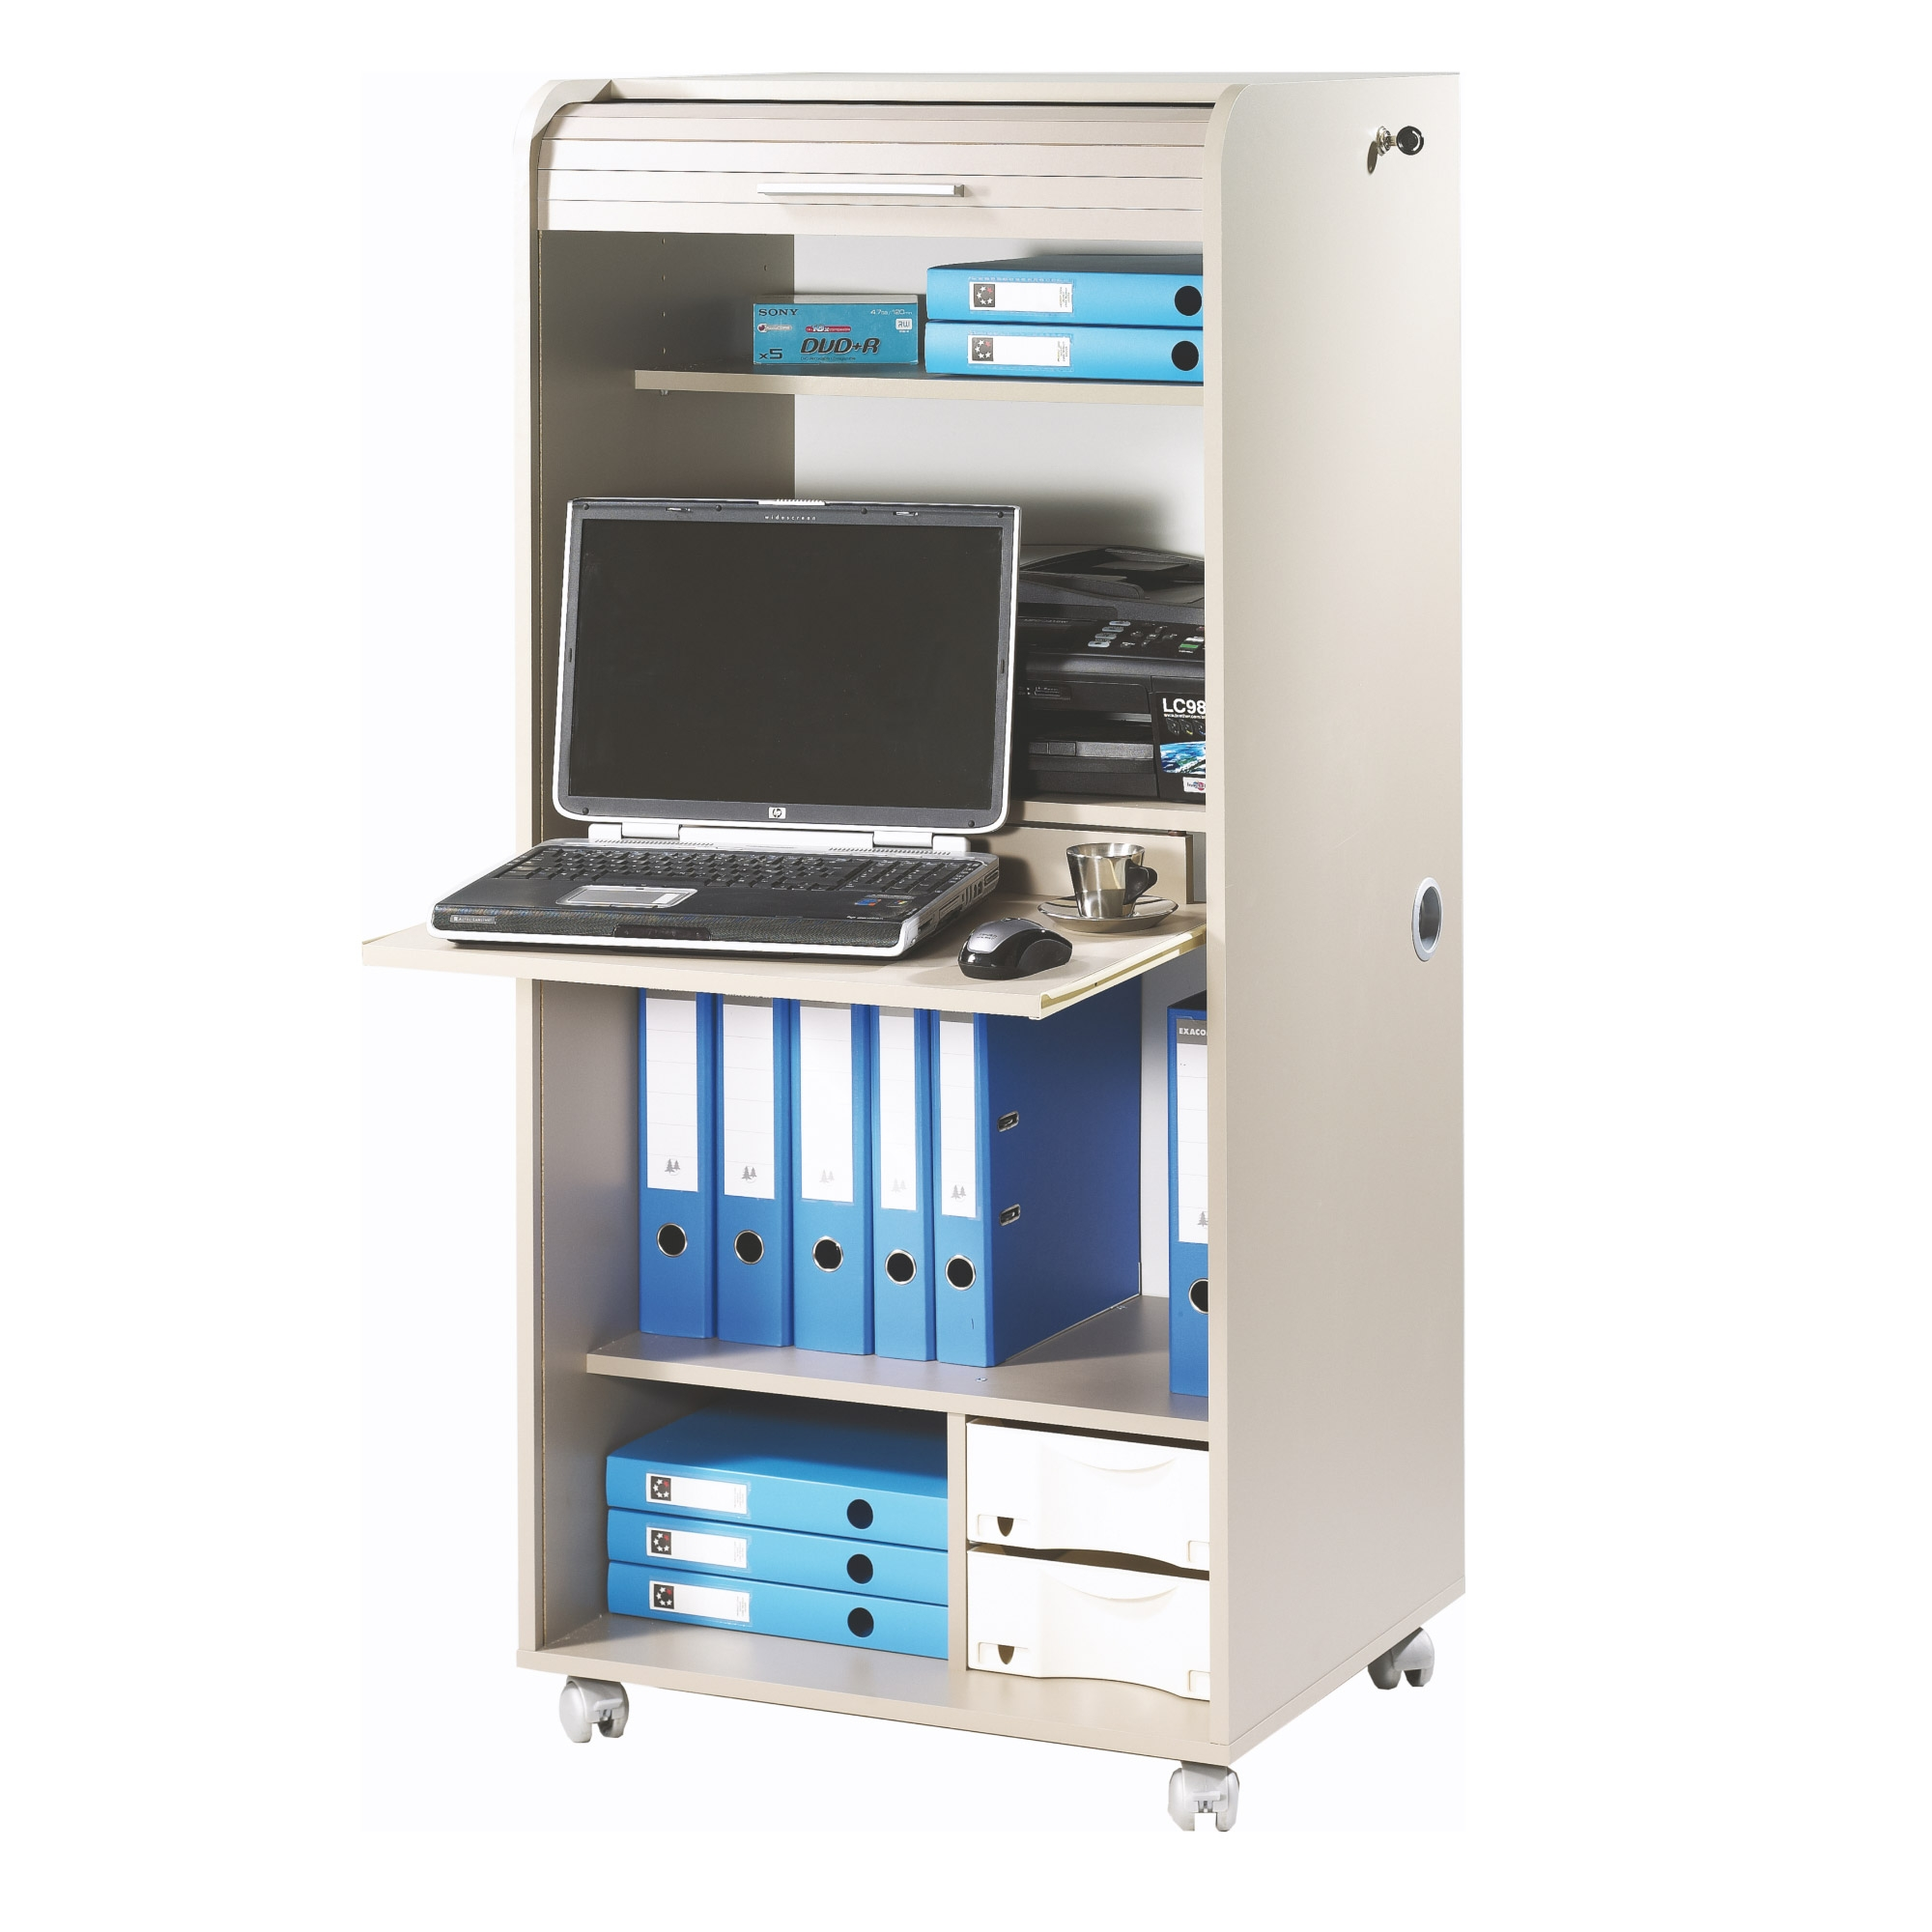 Bureau informatique taupe rideau orga for Bureau armoire informatique